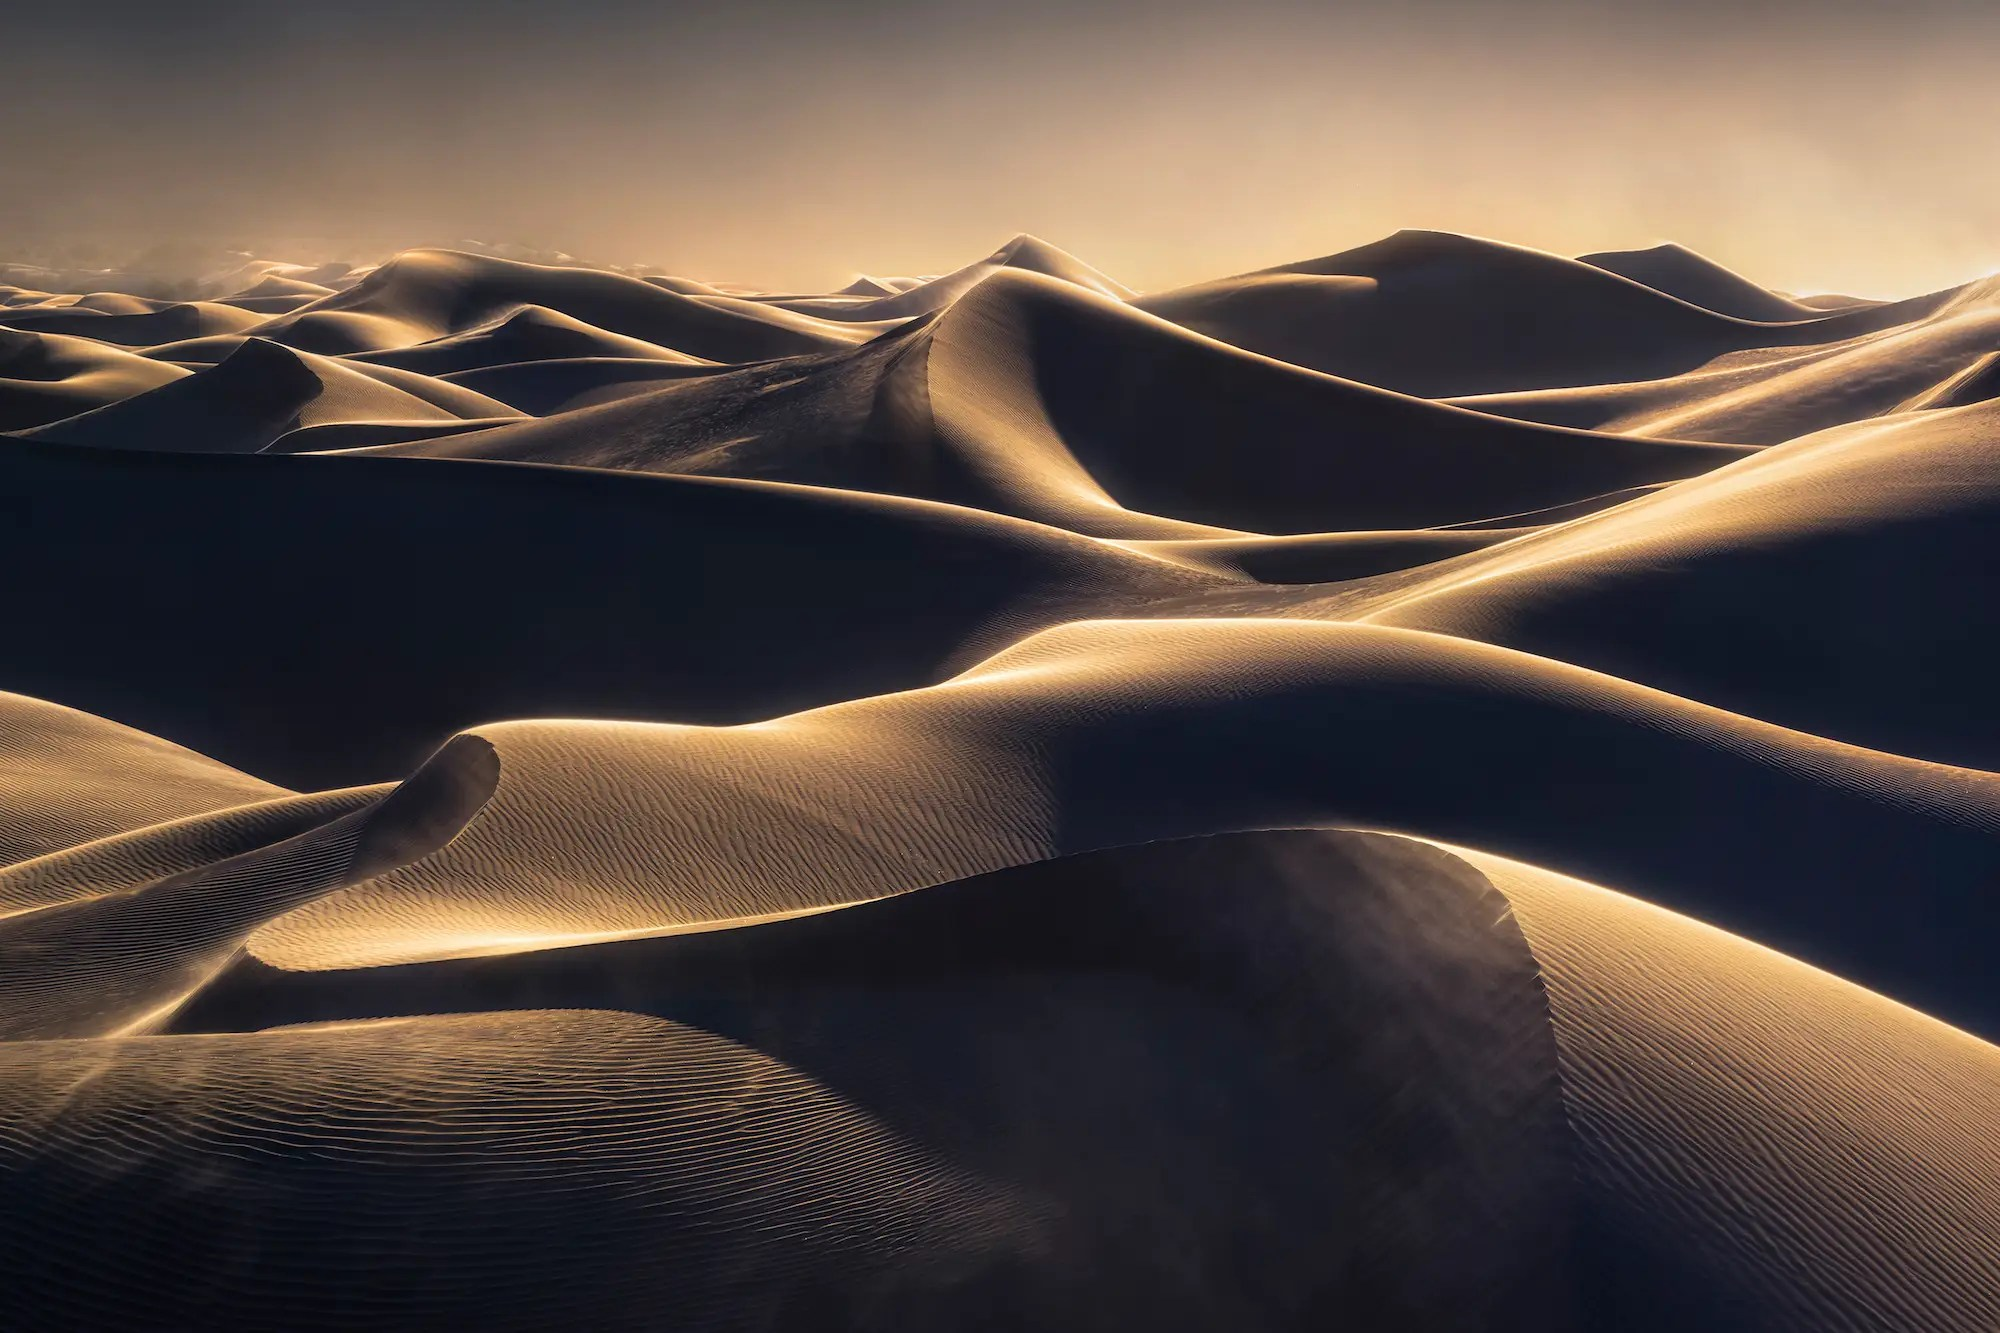 https://i2.wp.com/static2.businessinsider.com/image/5877f933f10a9a2a768b50f3-1200/alex-noriega-won-the-international-landscape-photographer-of-the-year-award-for-his-body-of-work-here-we-see-wind-and-golden-light-on-the-sand-dunes-of-death-valley-california.jpg